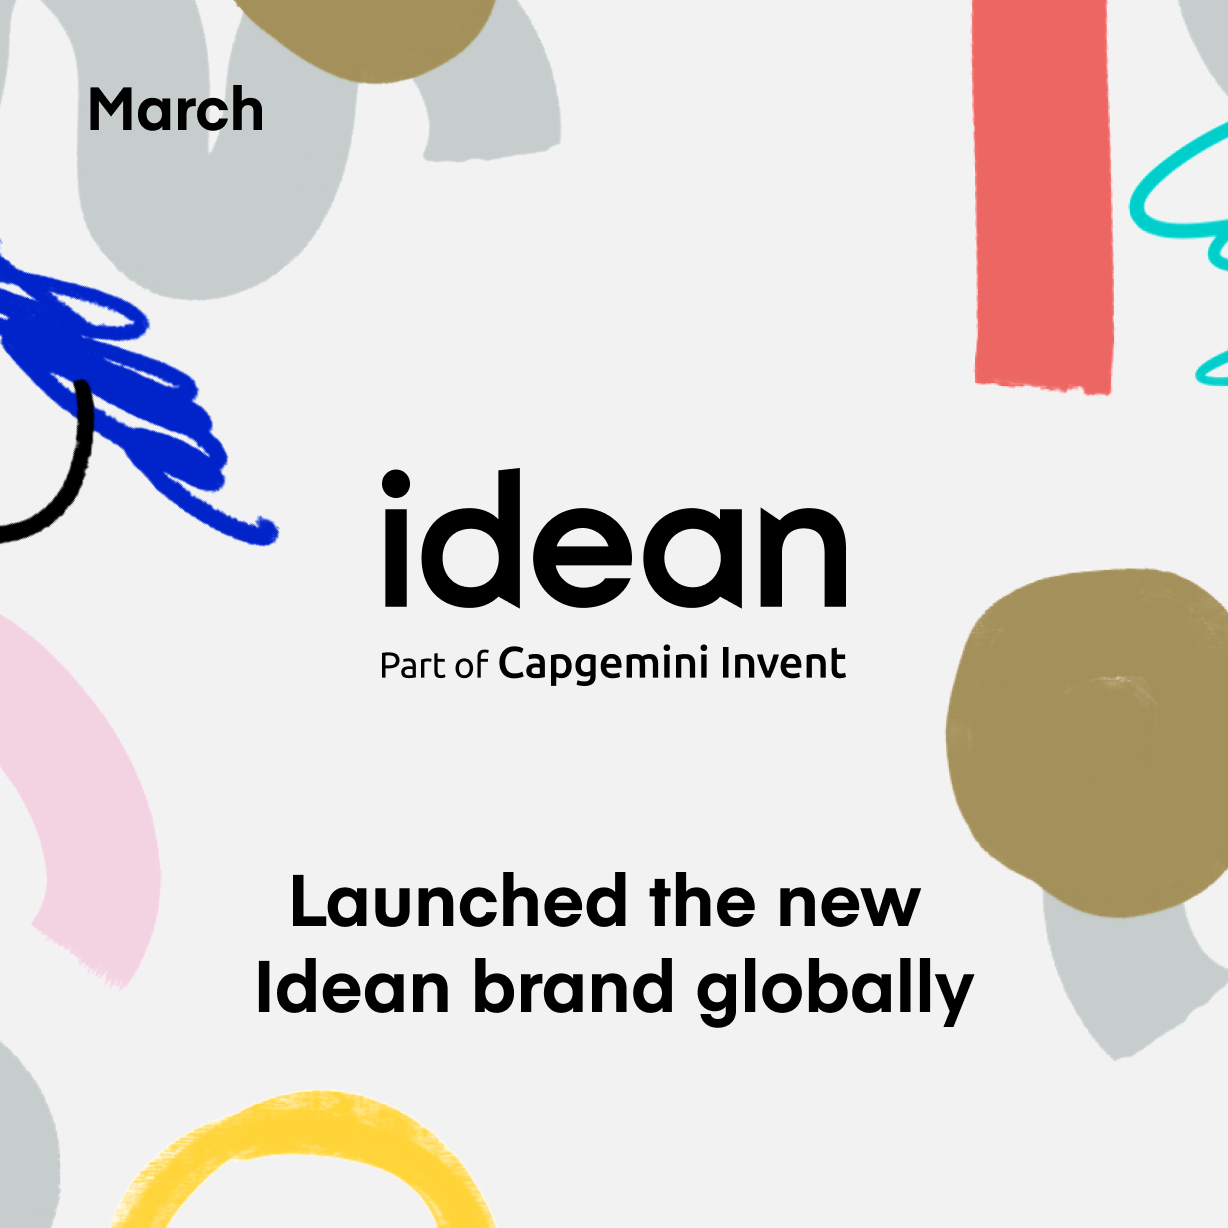 Launched the new Idean brand globally